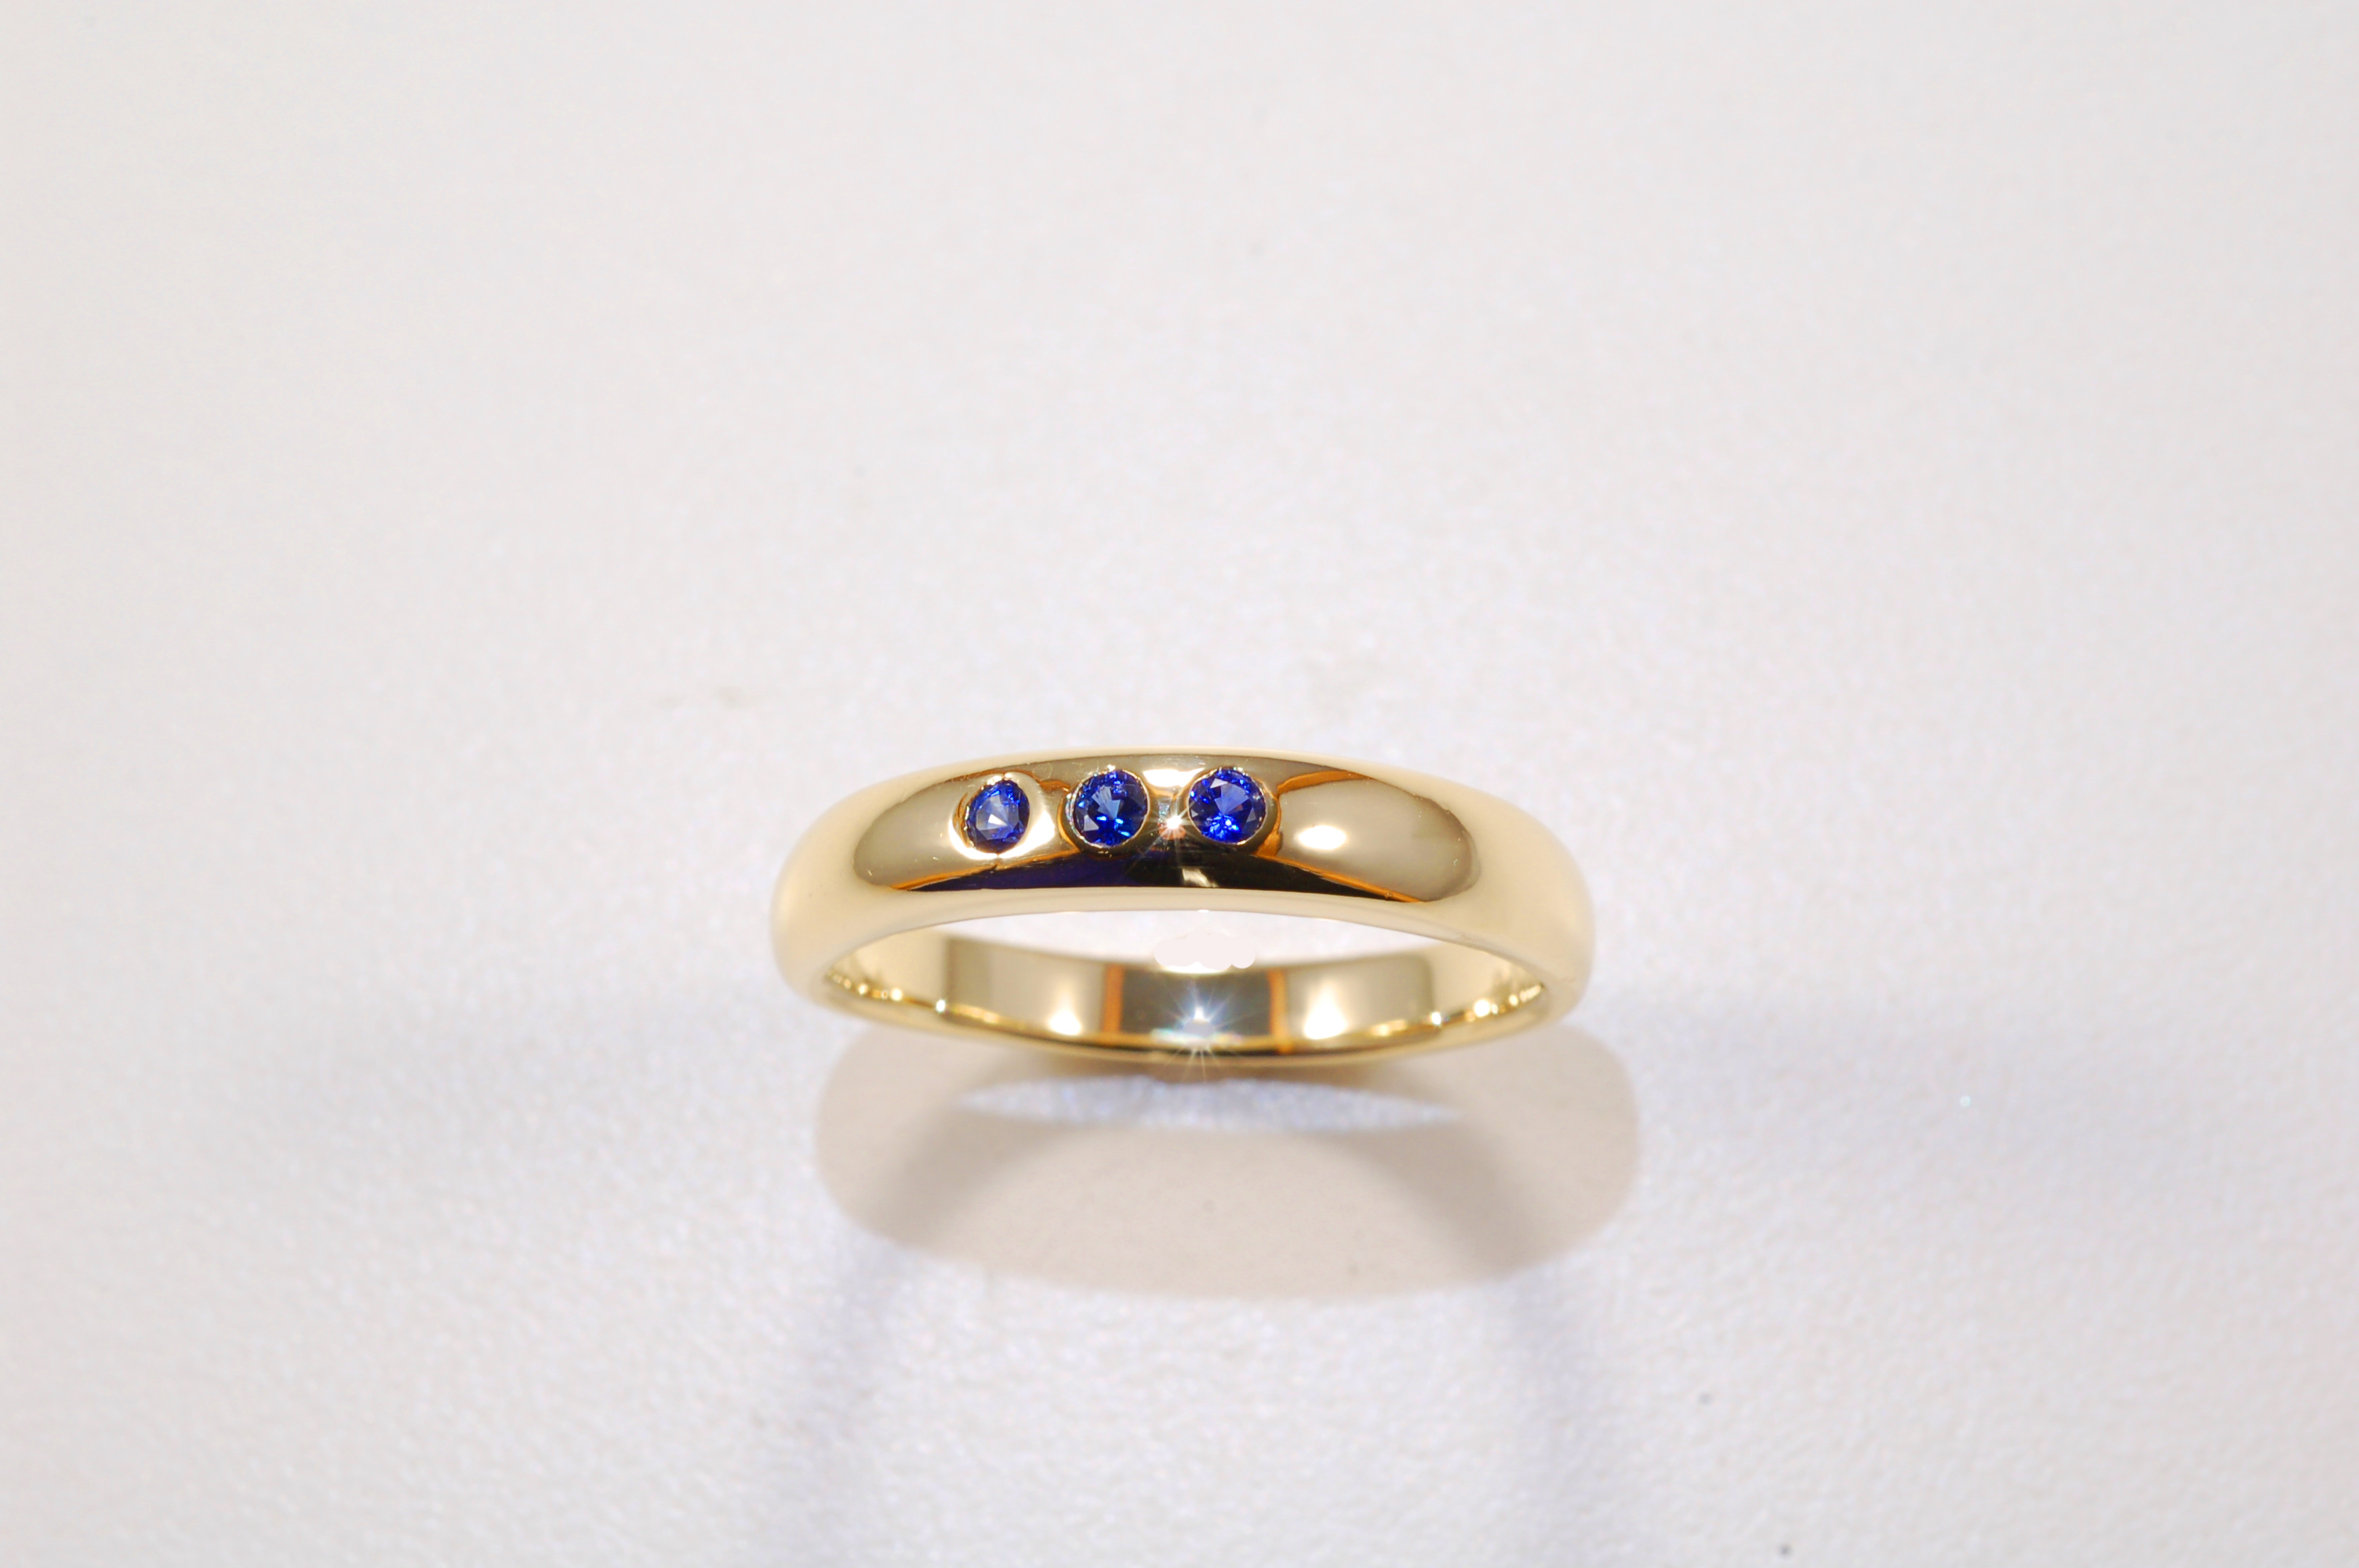 diamond three desktopdefault golden cut with a sapphire stone and cushion claw kashmir set ring